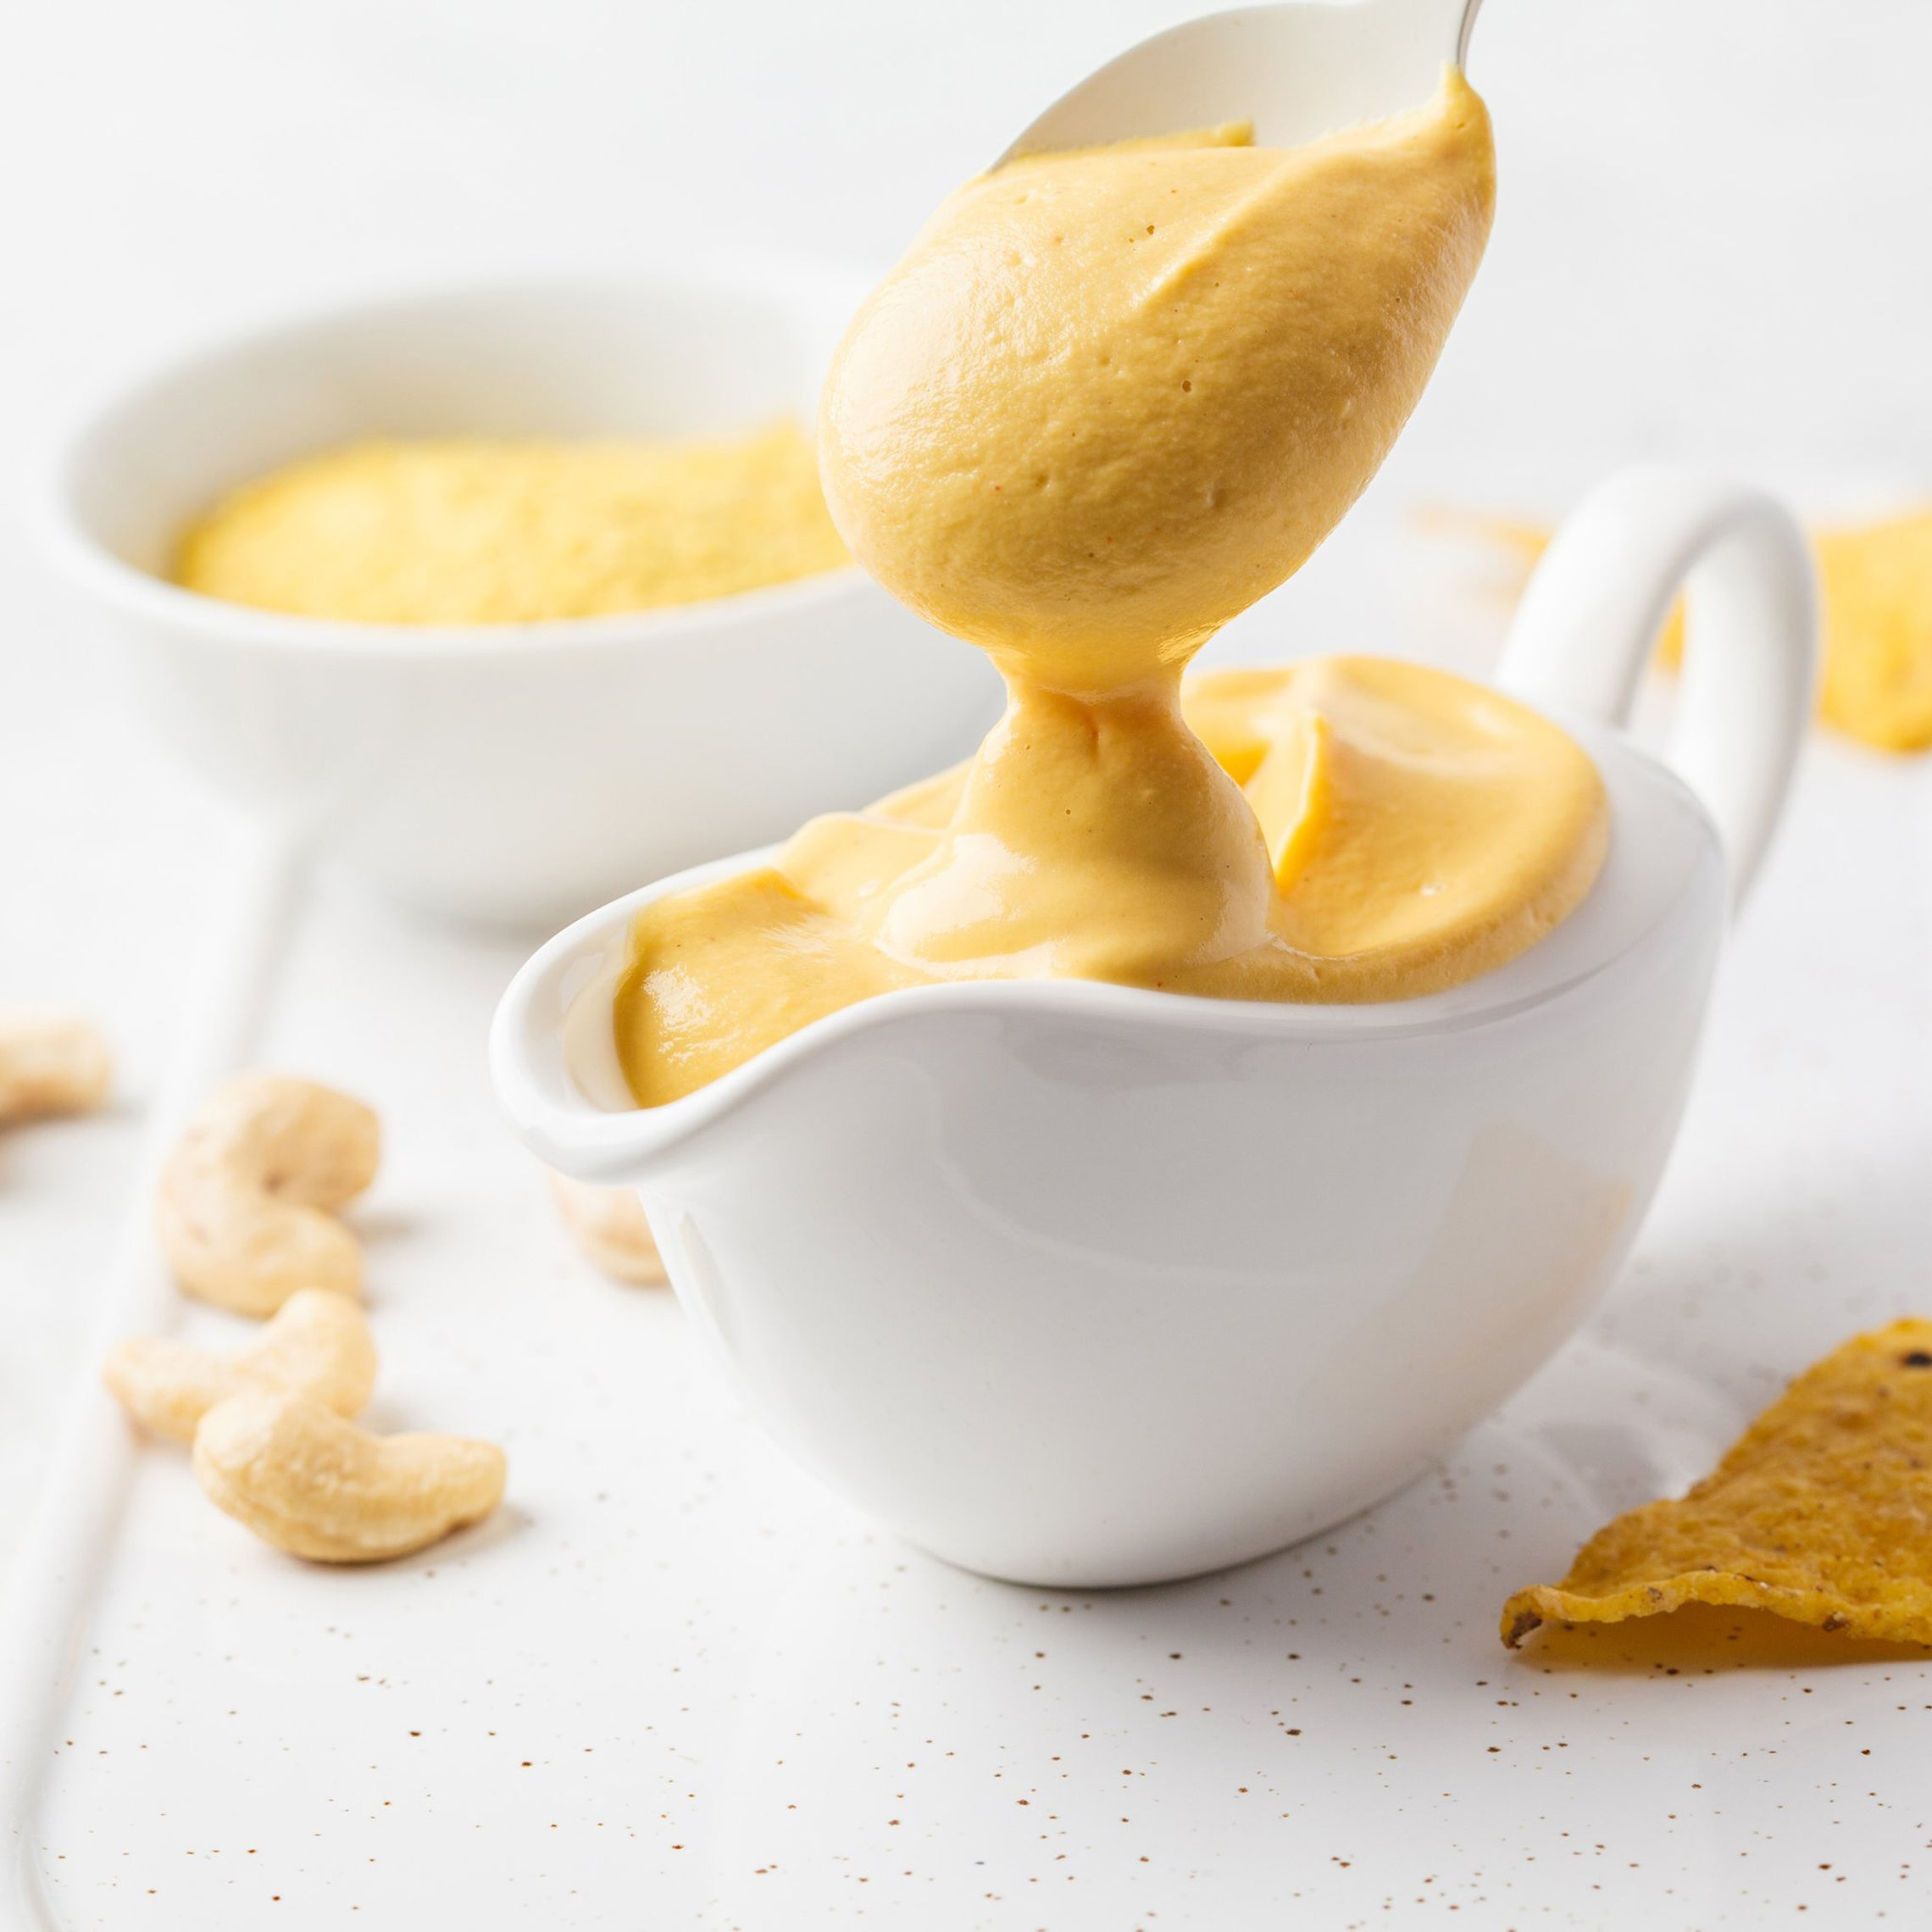 Not So Cheese (Nacho Cheese) Recipe from Foods Alive